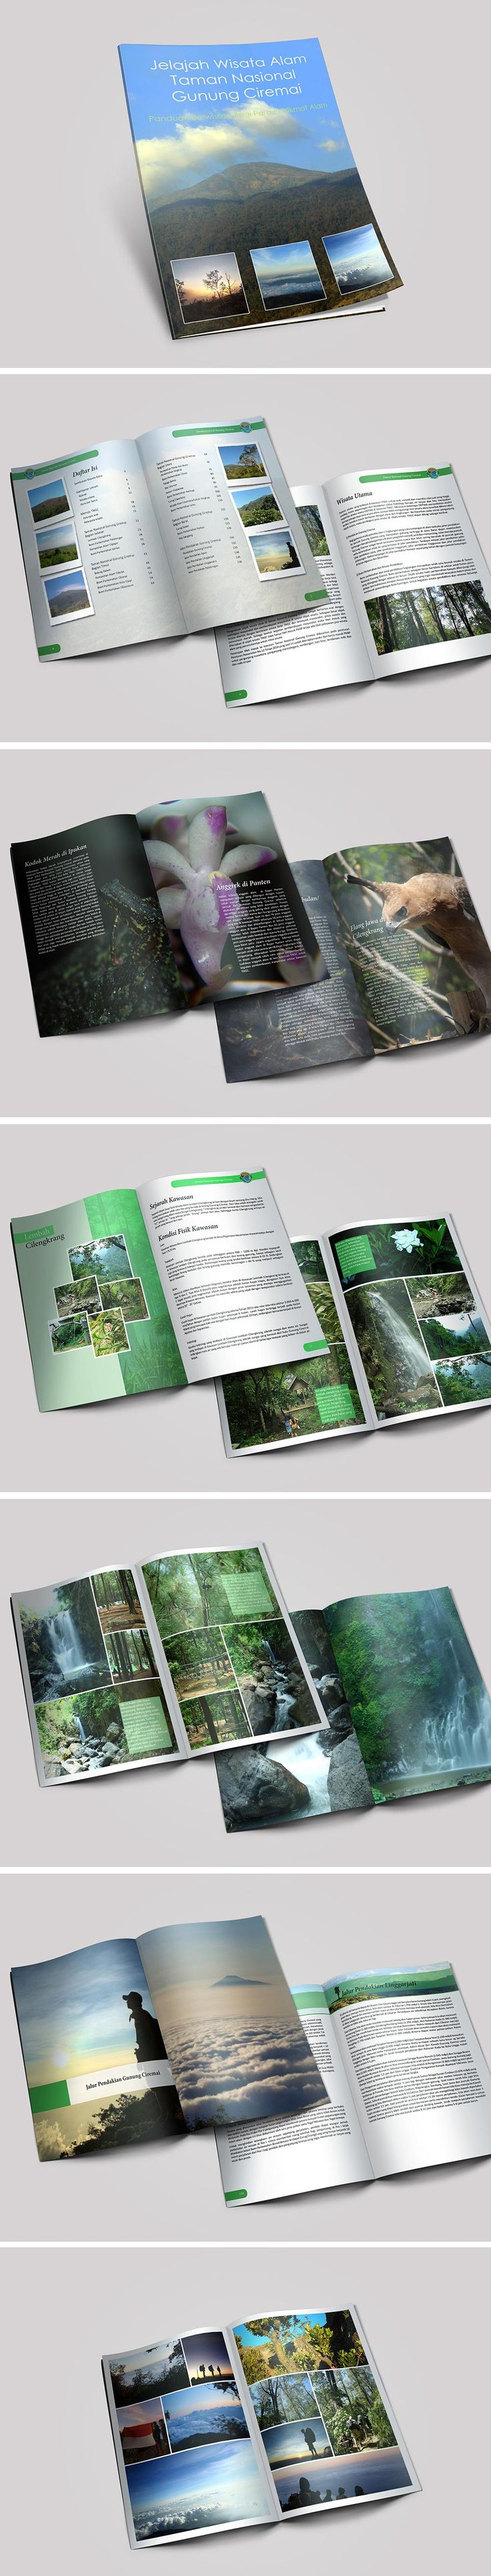 Photo book/travel book layout | Visit my gig on fiverr https://www.fiverr.com/cilok if you want to order book/ebook layout or email me at gian@tikukur13.com